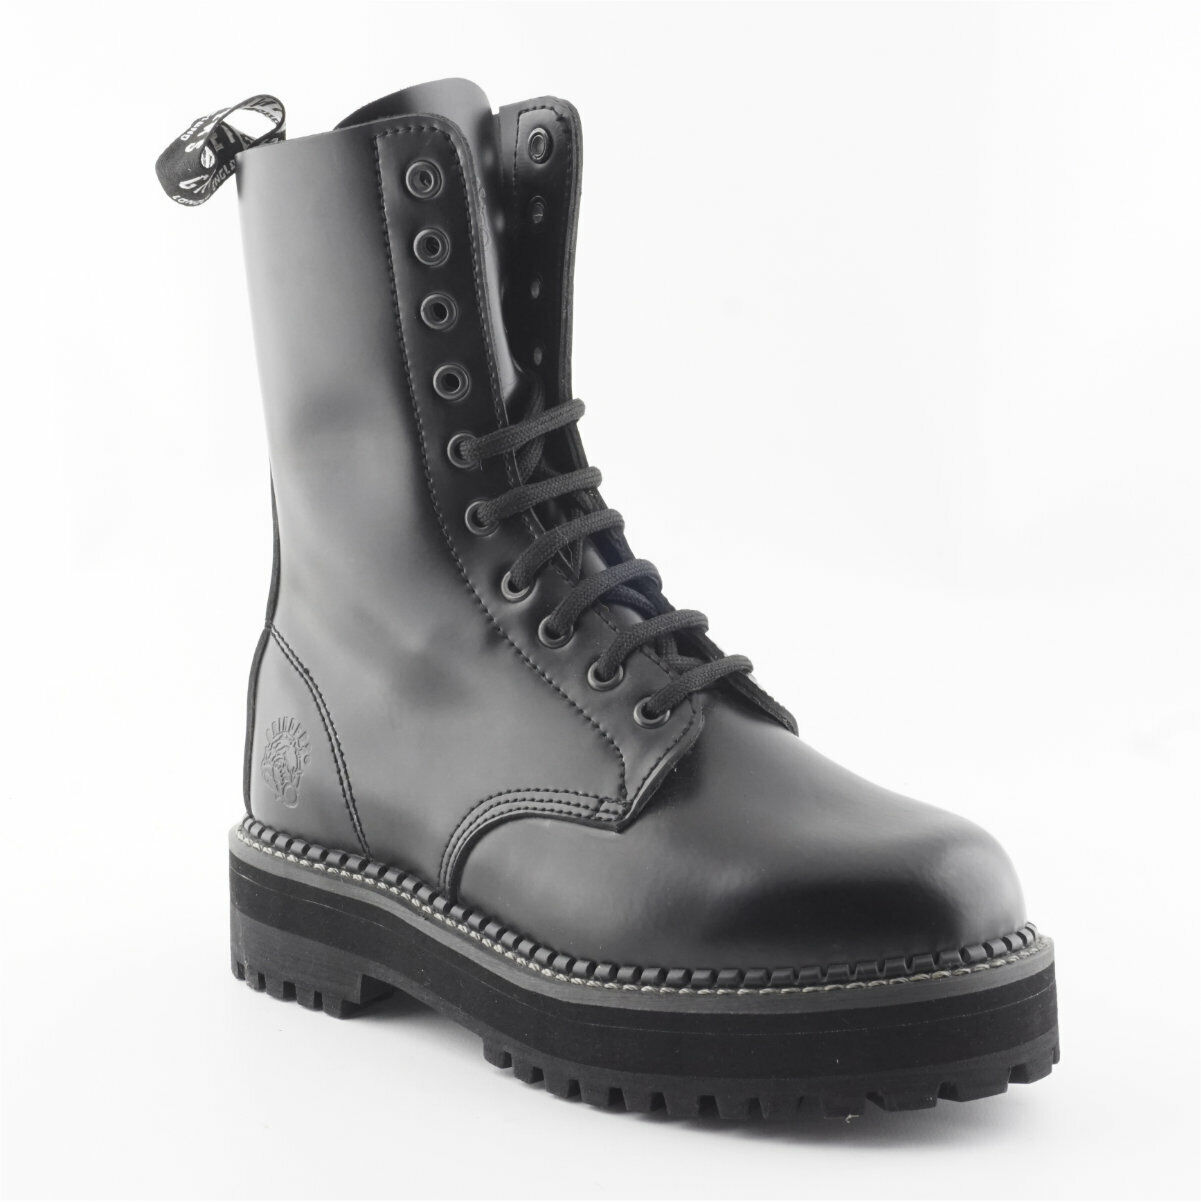 Women's Grinders Taylor Taylor Taylor CS Black 10 eyelet Non Steel Toe Derby Boot 4fb56c